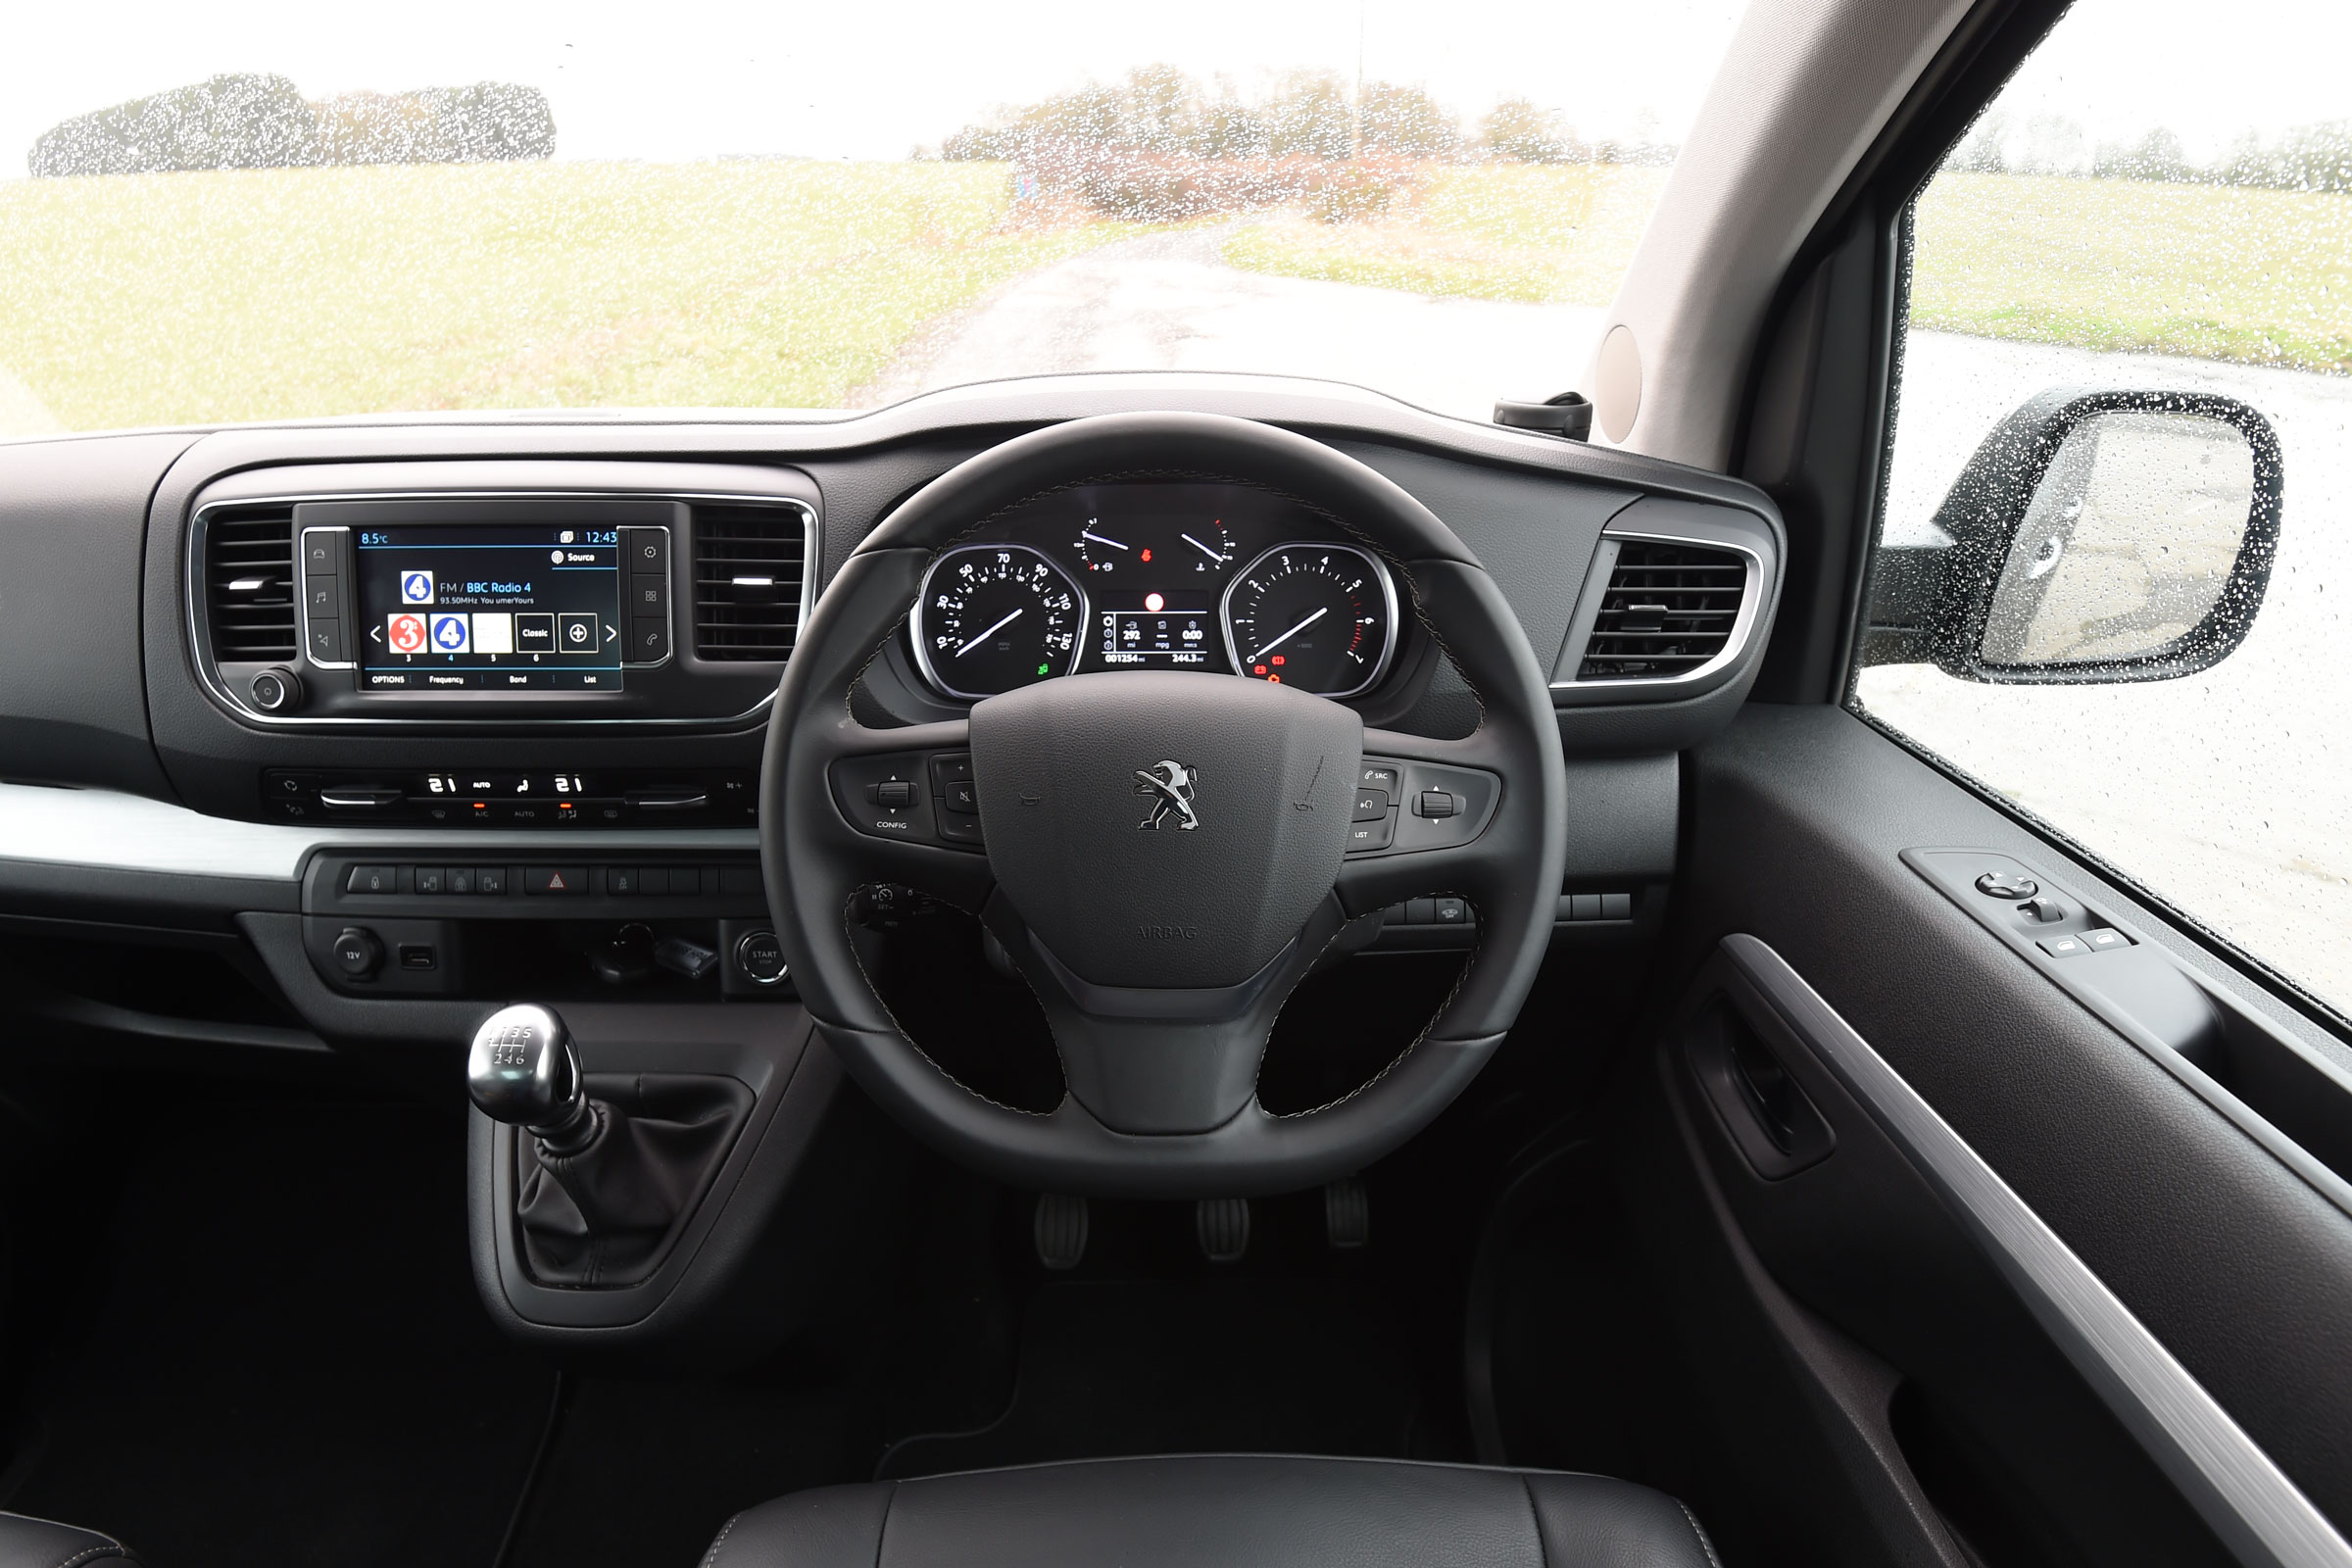 2017 Peugeot Traveller Allure Interior Driver Cockpit Steering (Photo 7 of 13)